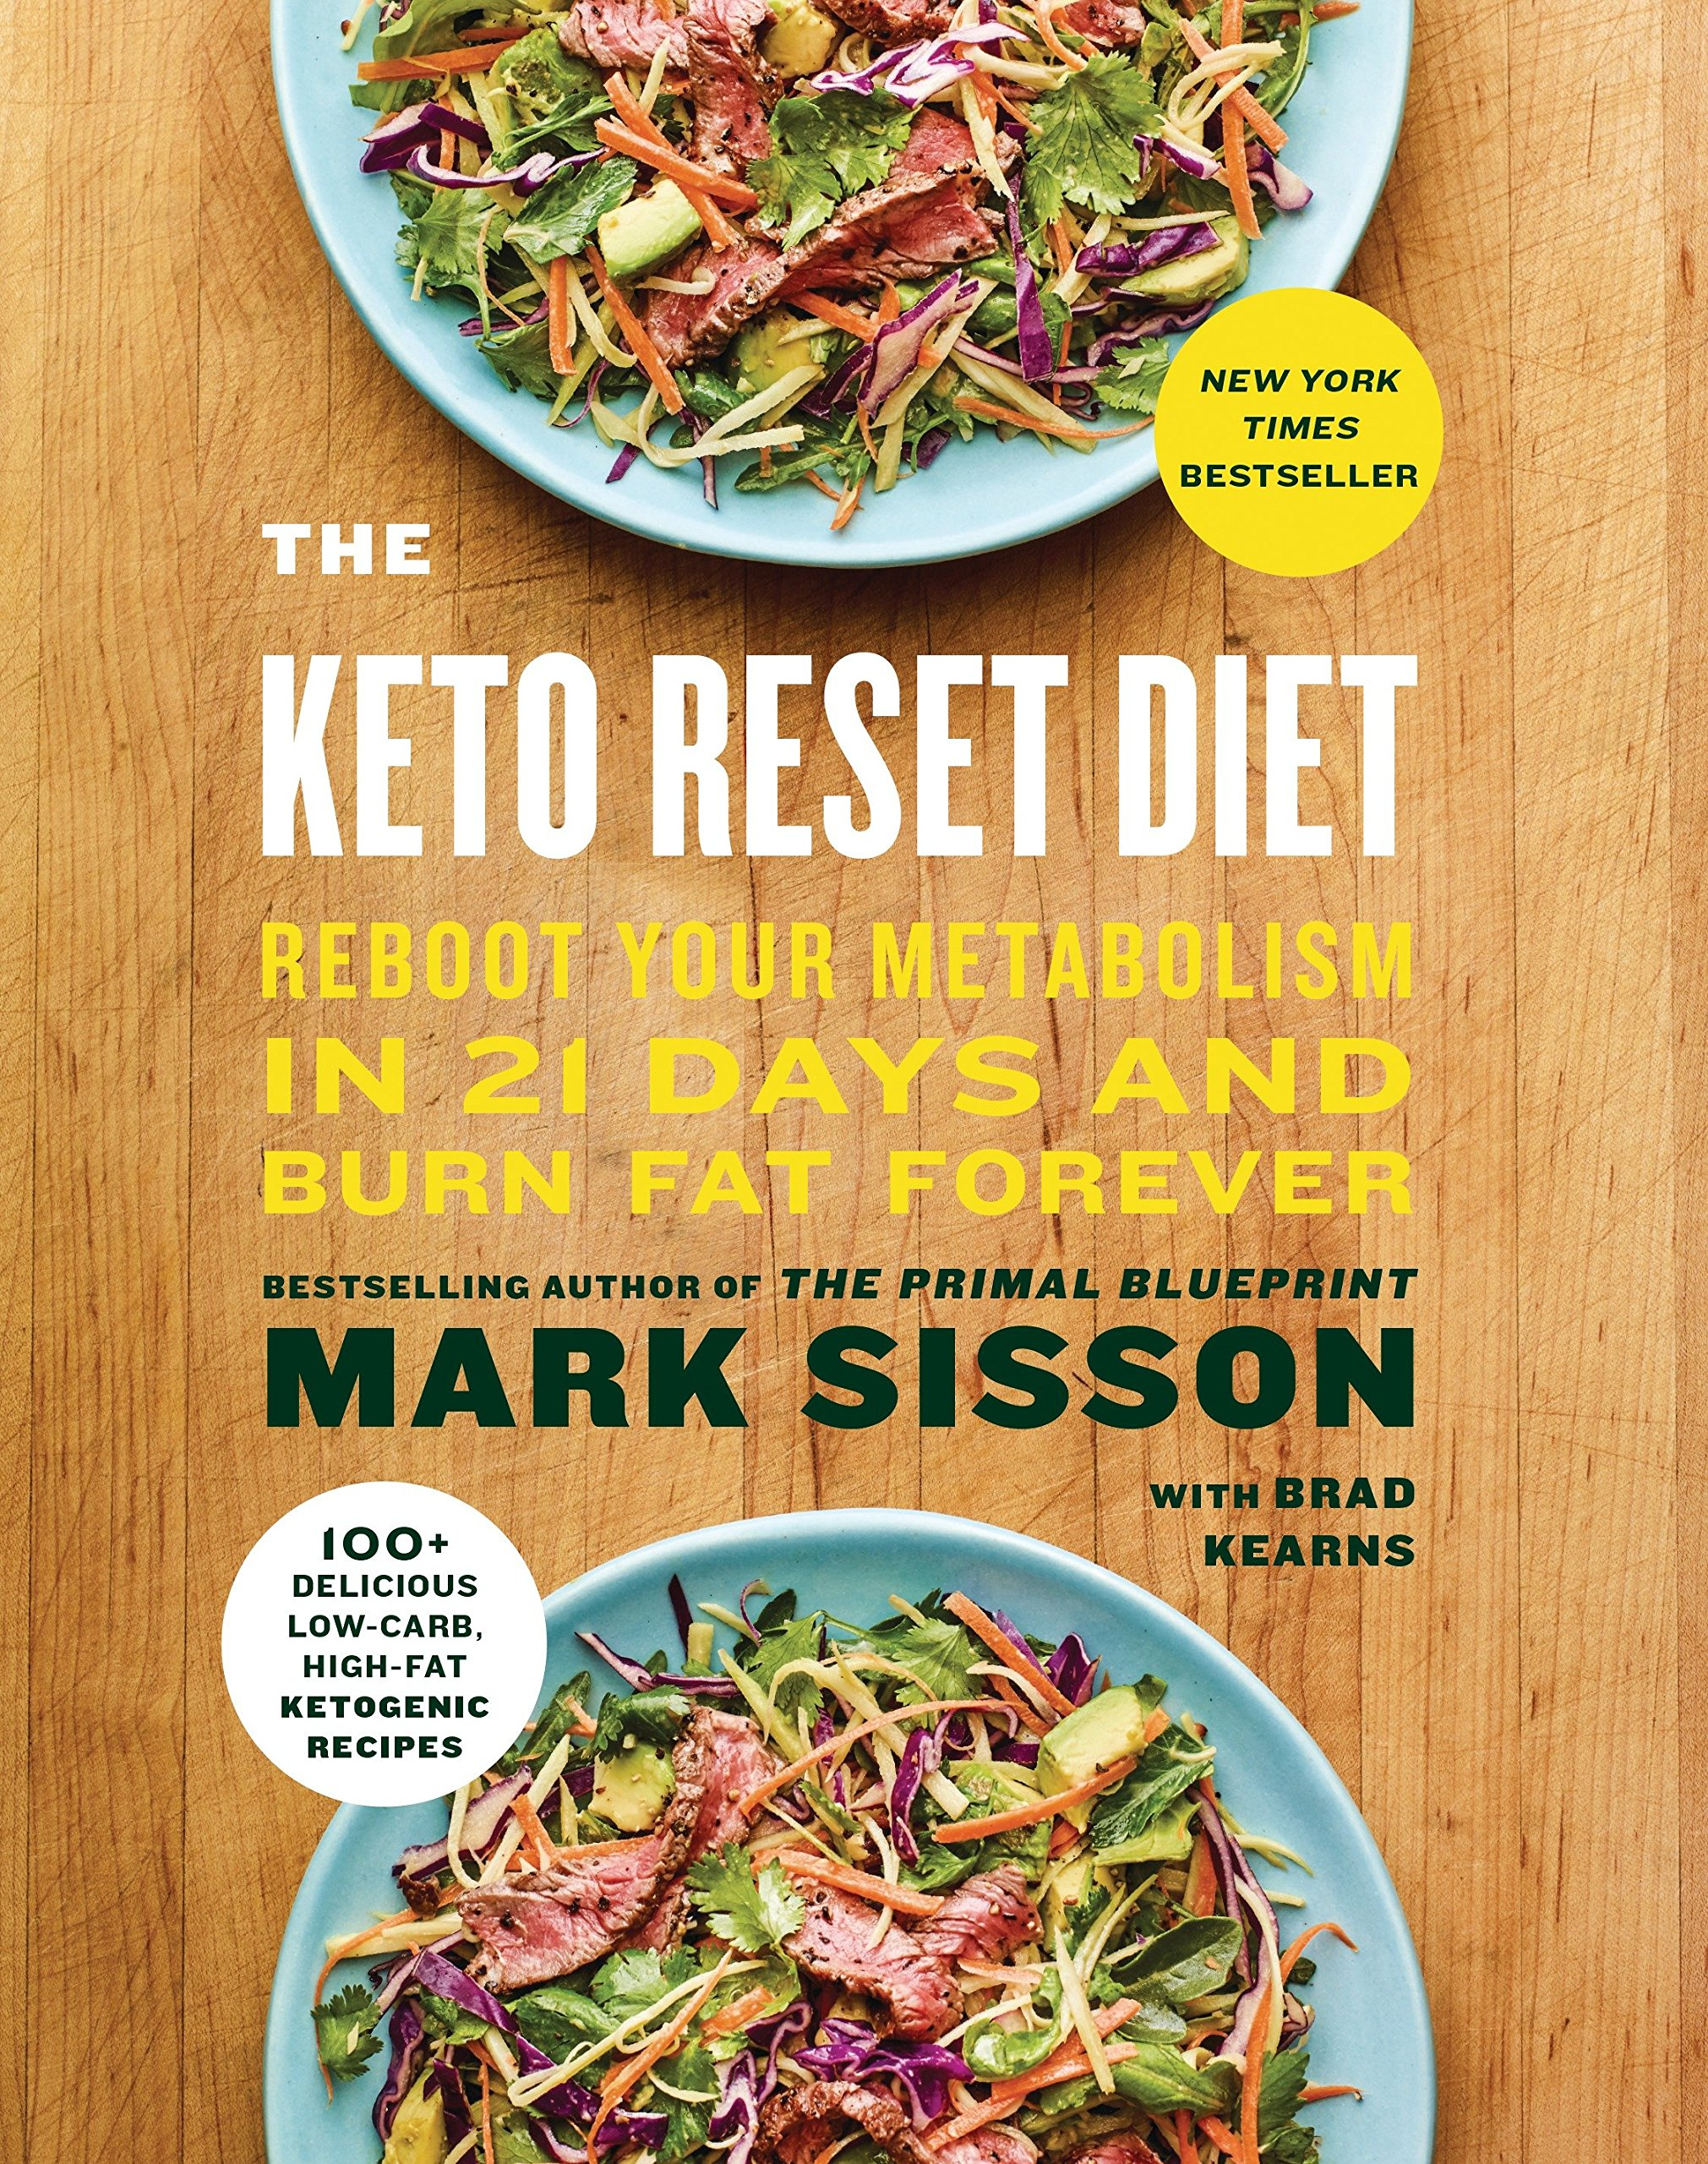 The Keto Reset Diet: Reboot Your Metabolism in 21 Days and Burn Fat  Forever: Mark Sisson, Brad Kearns: 9781524762230: Amazon.com: Books